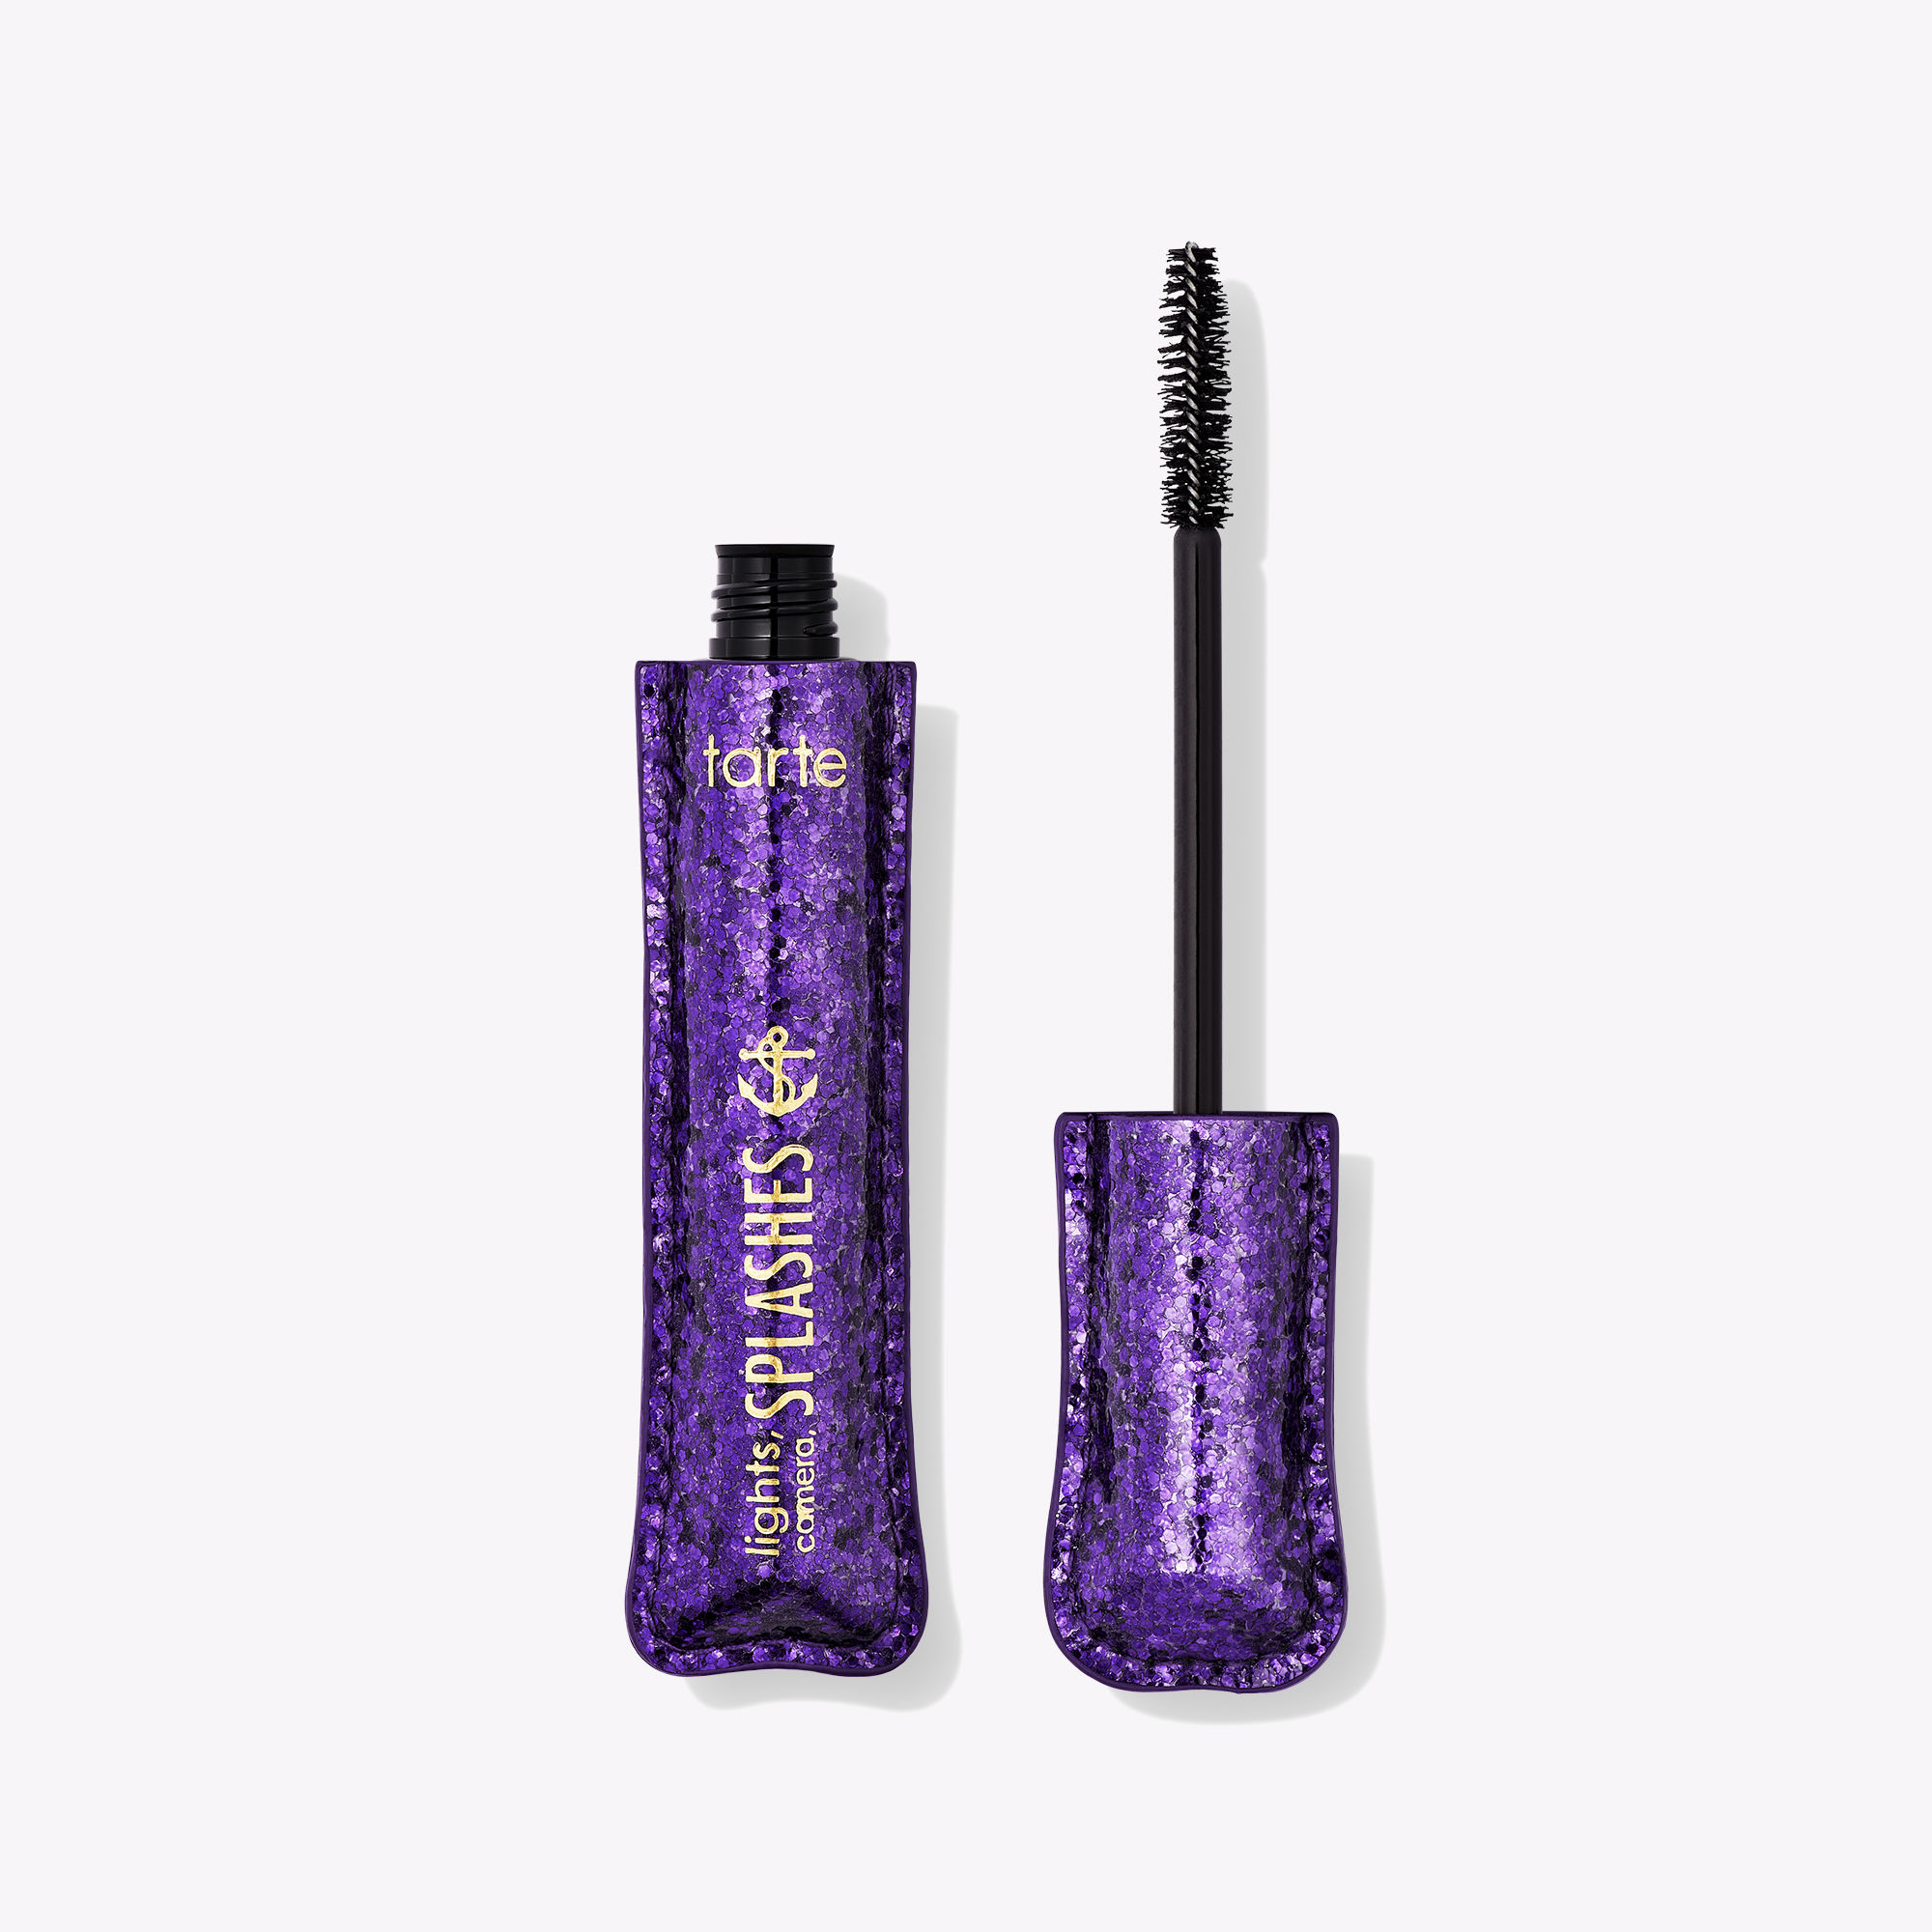 Tarte's Lights, Camera, Splashes Waterproof Mascara